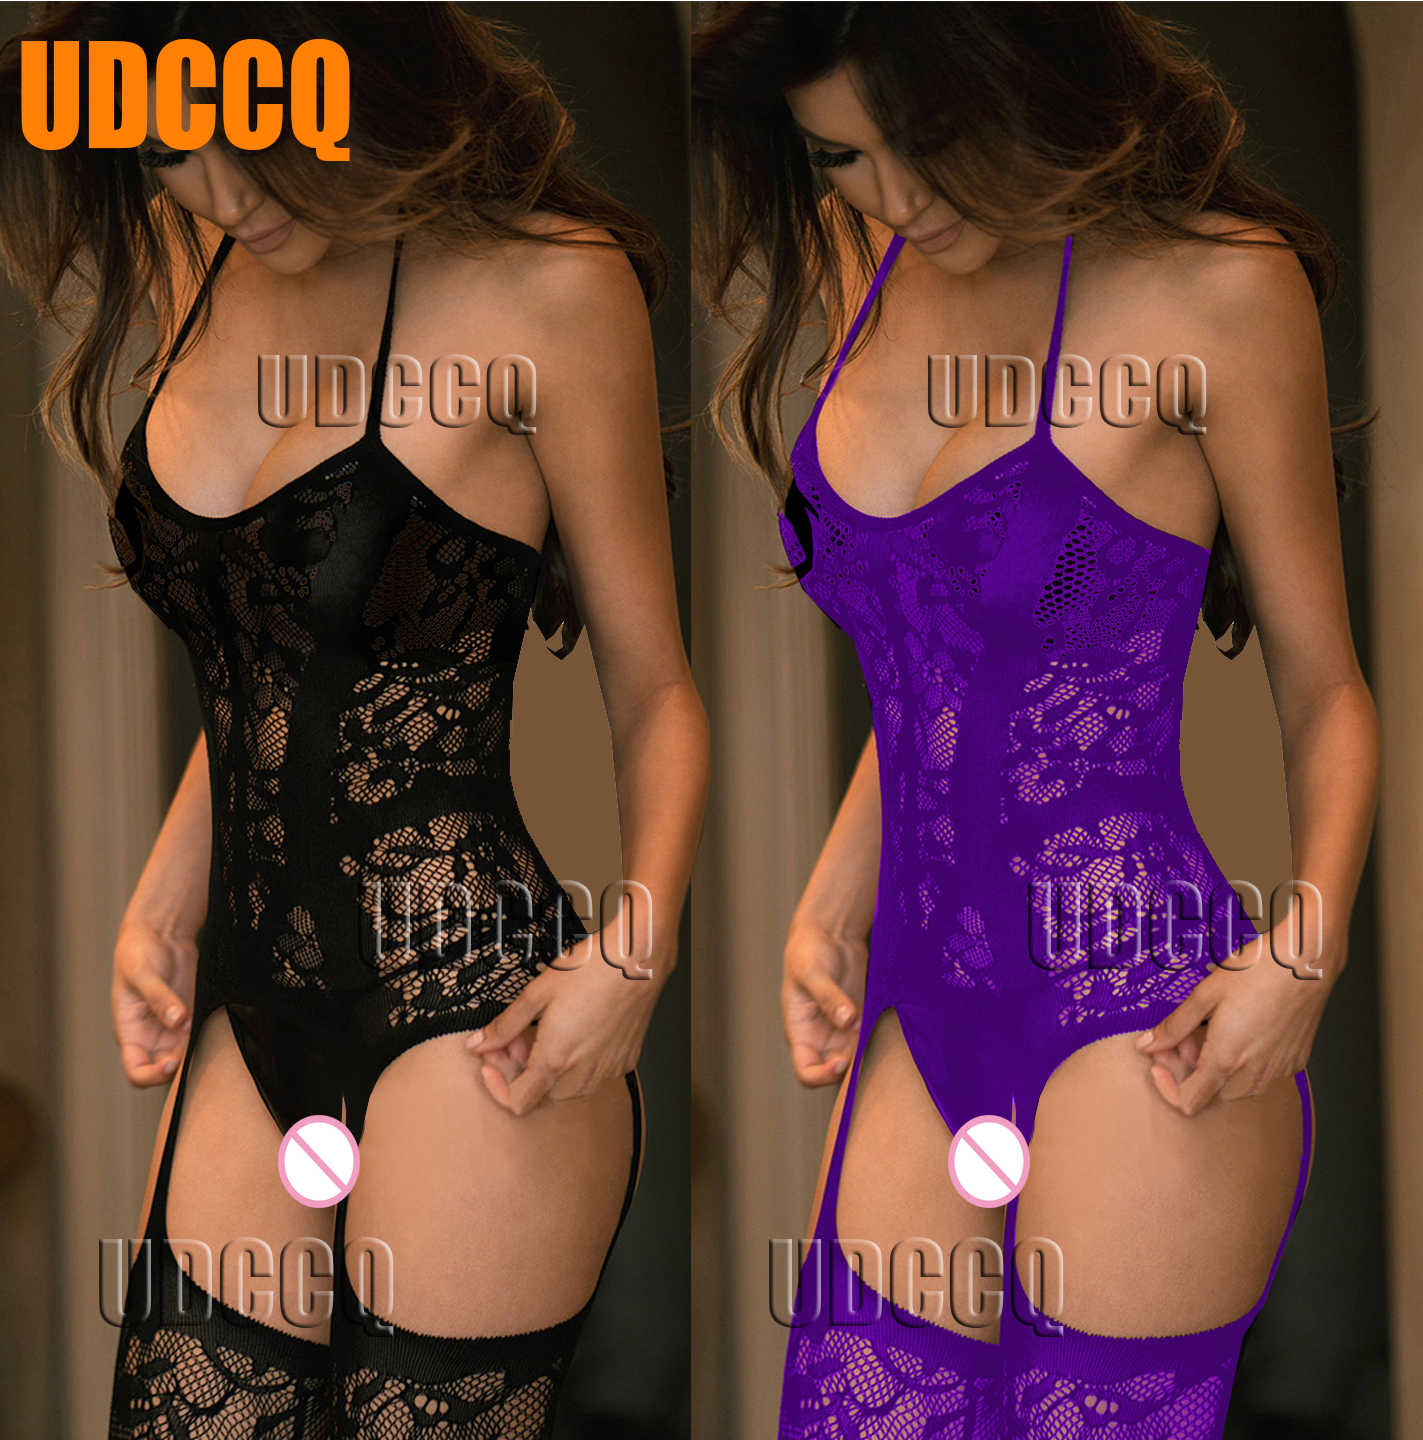 Sexy Visnet Lingerie Babydoll Baby Doll Dress Wedding Night Ondergoed Intimates Chemises Bodystocking Kostuums Negligees 9911